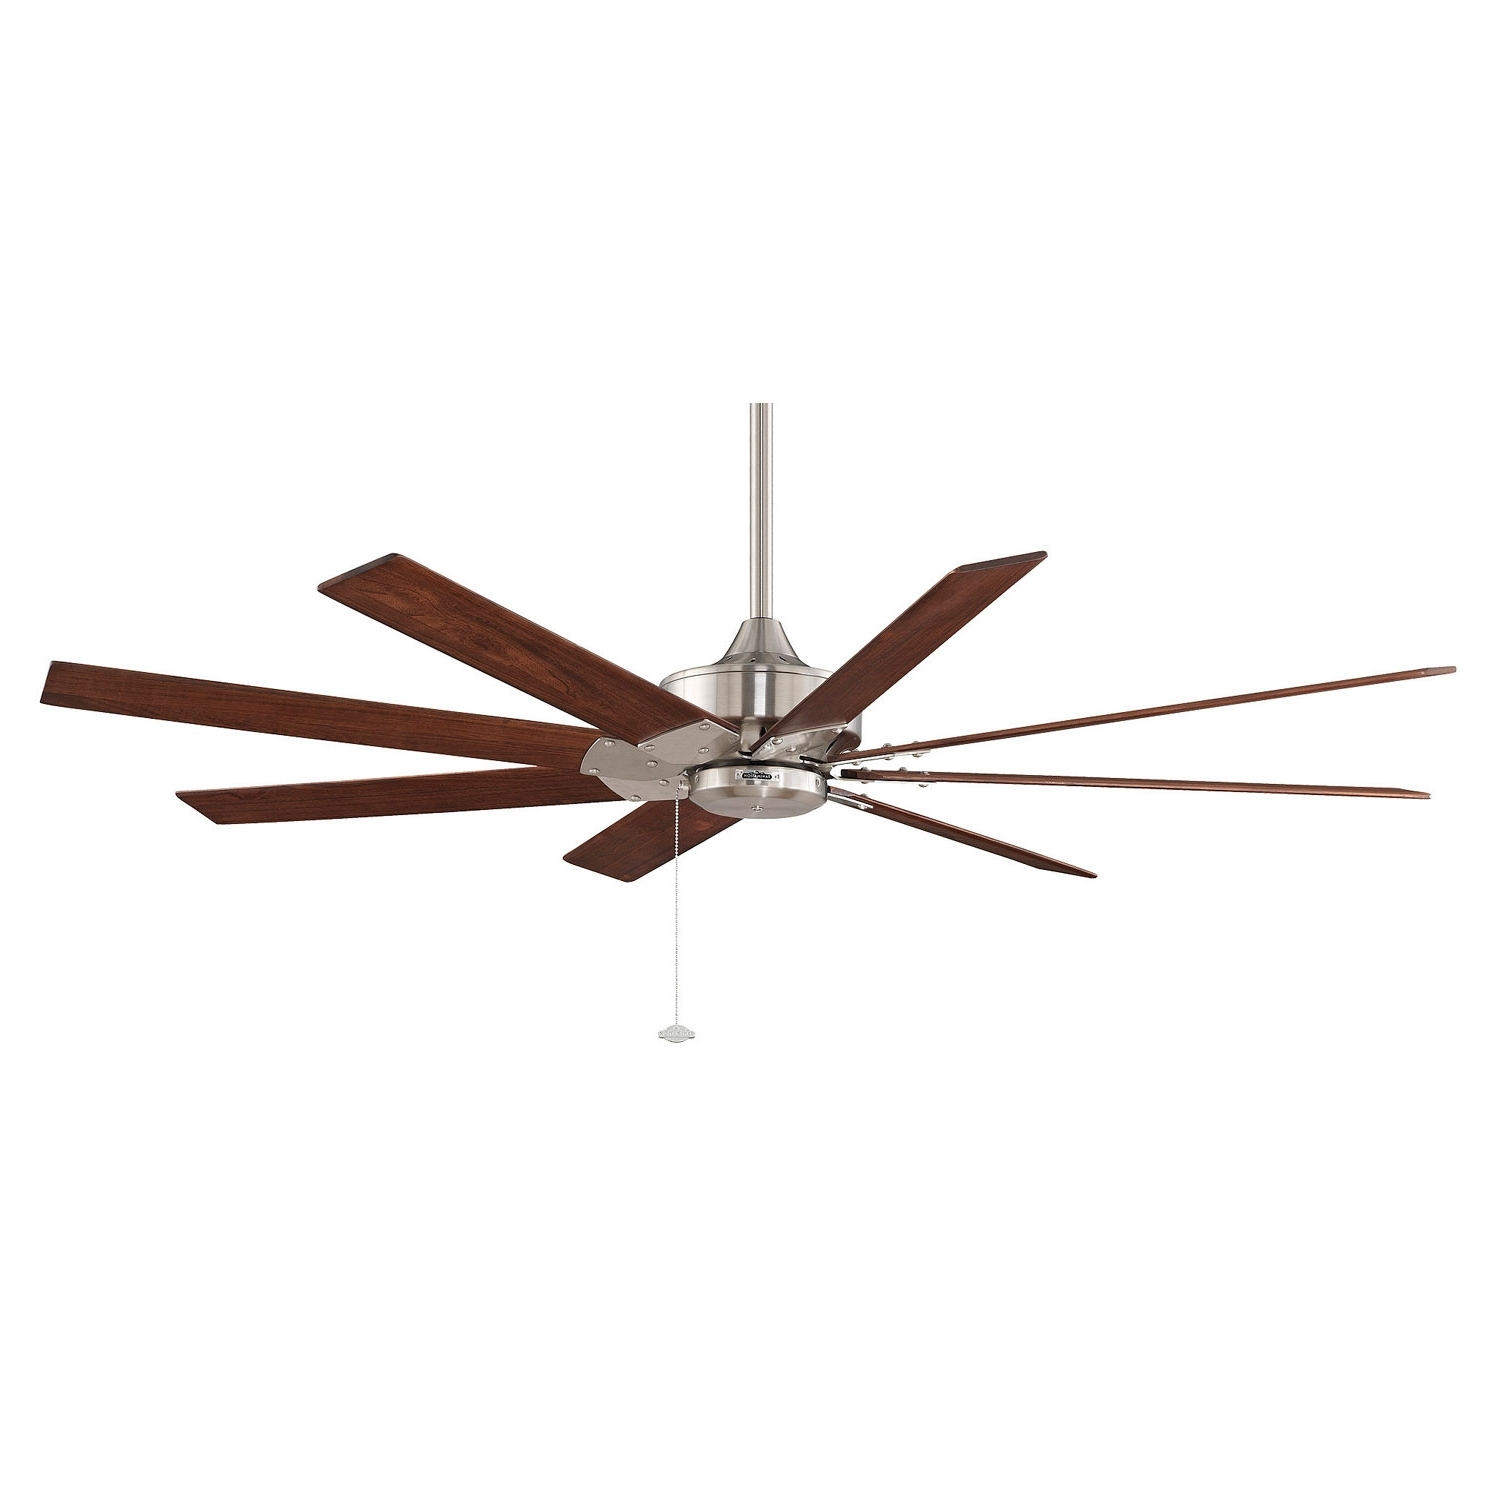 Brushed Nickel Outdoor Ceiling Fans Within Popular Fanimation Levon Brushed Nickel 63 Inch Energy Star Ceiling Fan With (View 8 of 20)